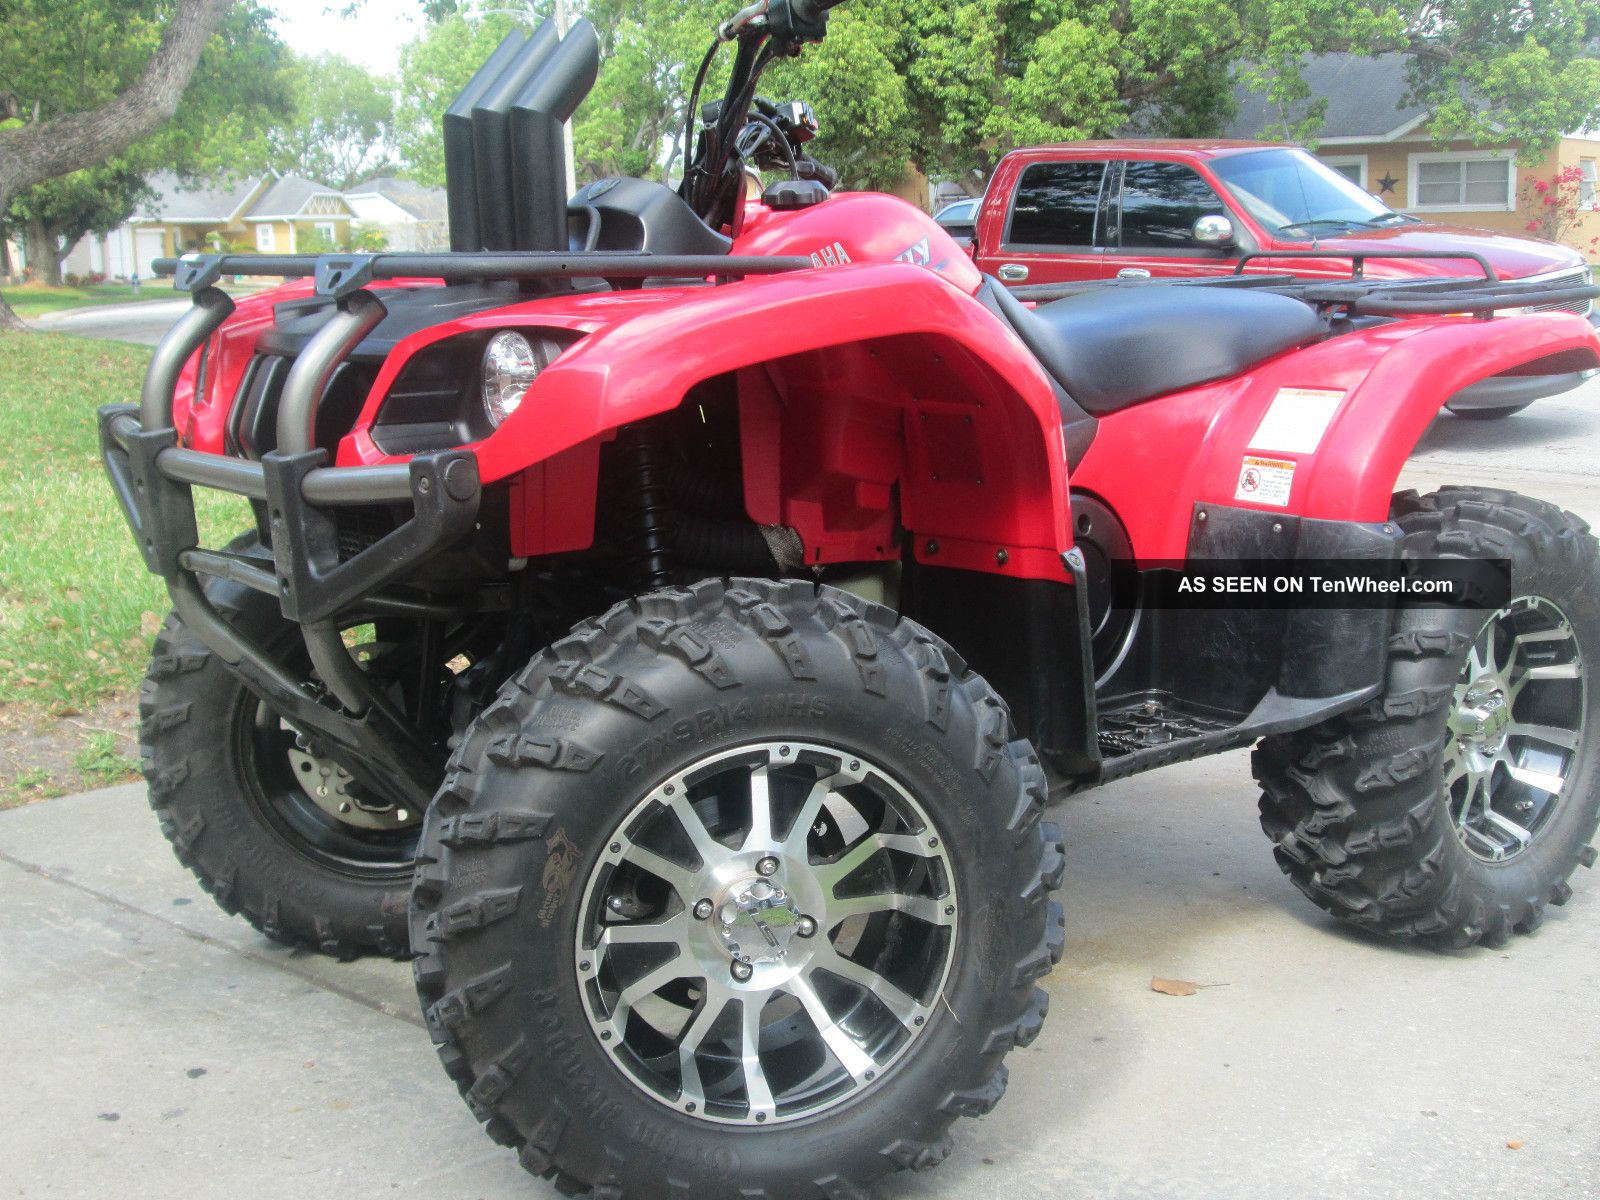 2006 Yamaha Grizzly Yamaha photo